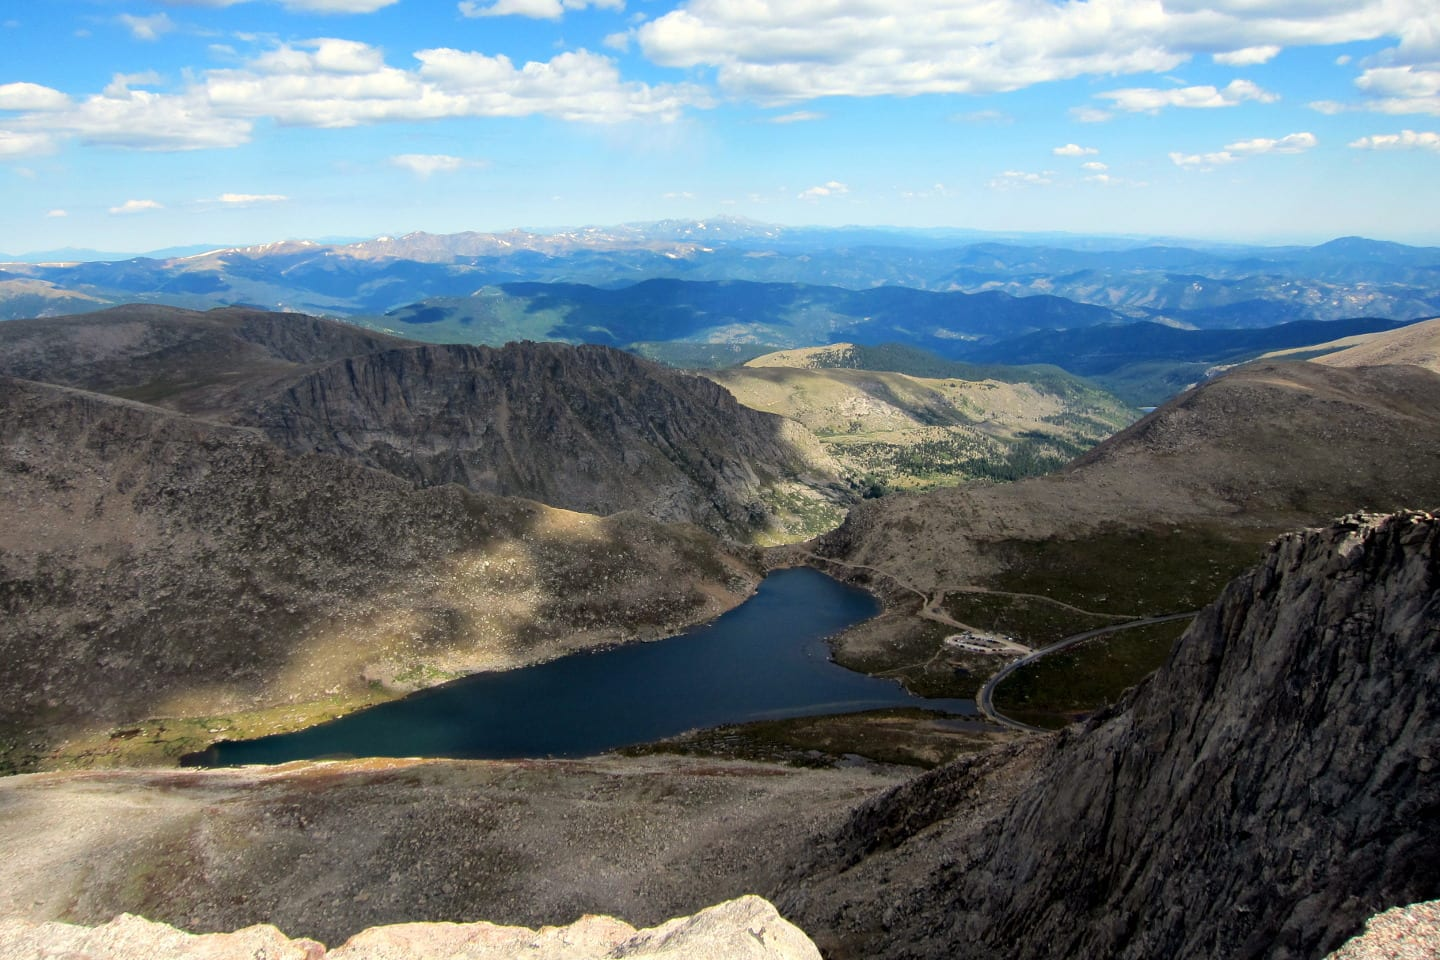 Mount Evans Wilderness Summit Overlook